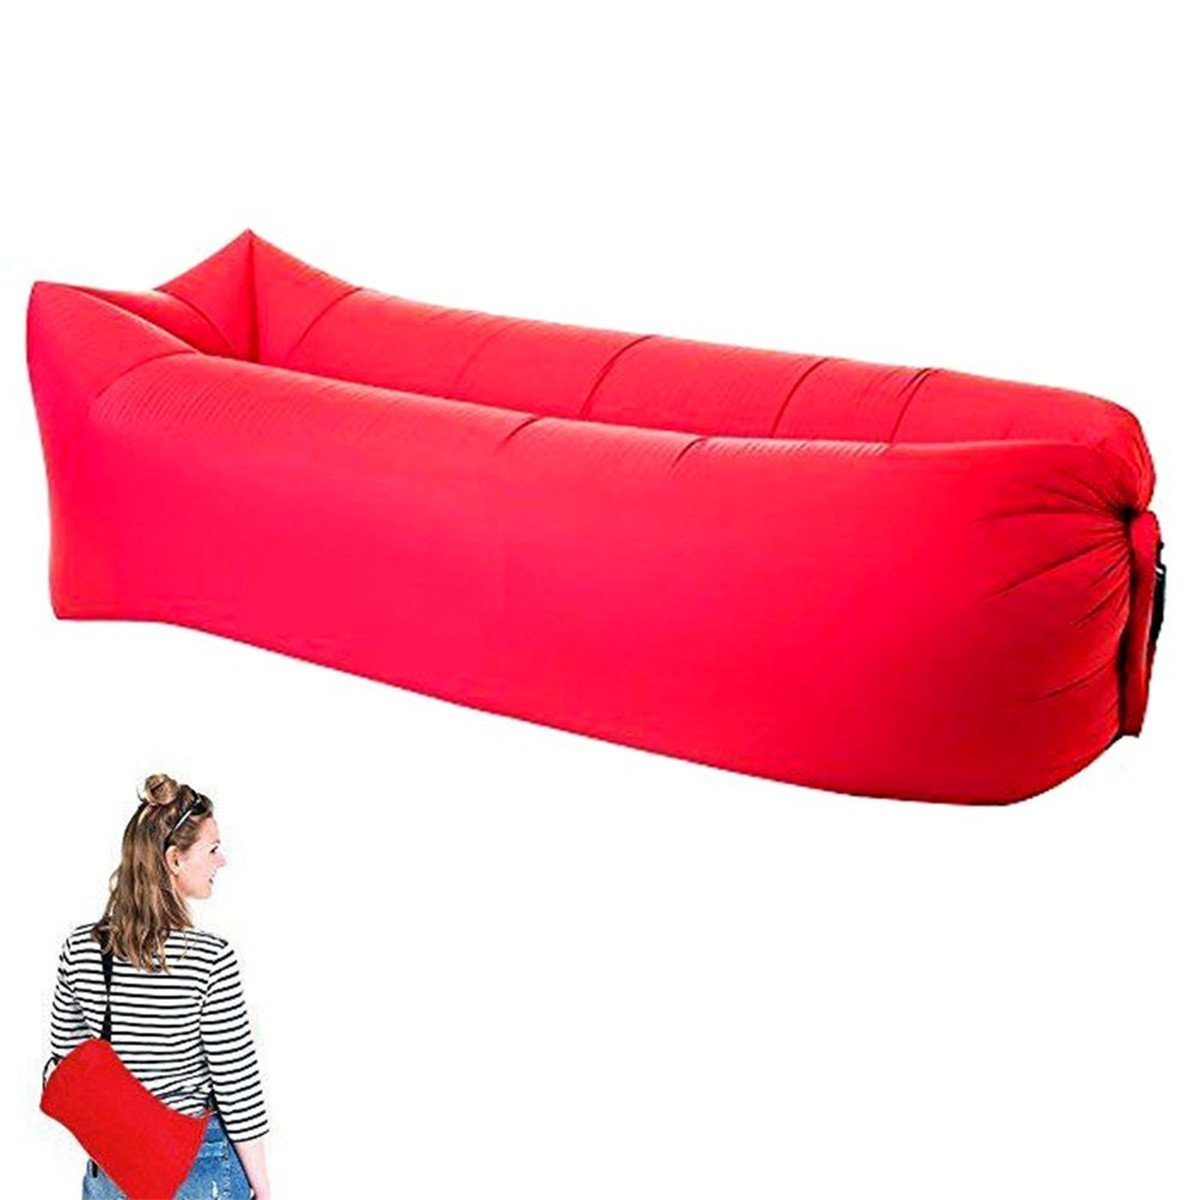 Get Quotations Jisoncase Inflatable Lounger Sofa Portable Air Mattresses Beds Beach Sleeping Waterproof Fast Self